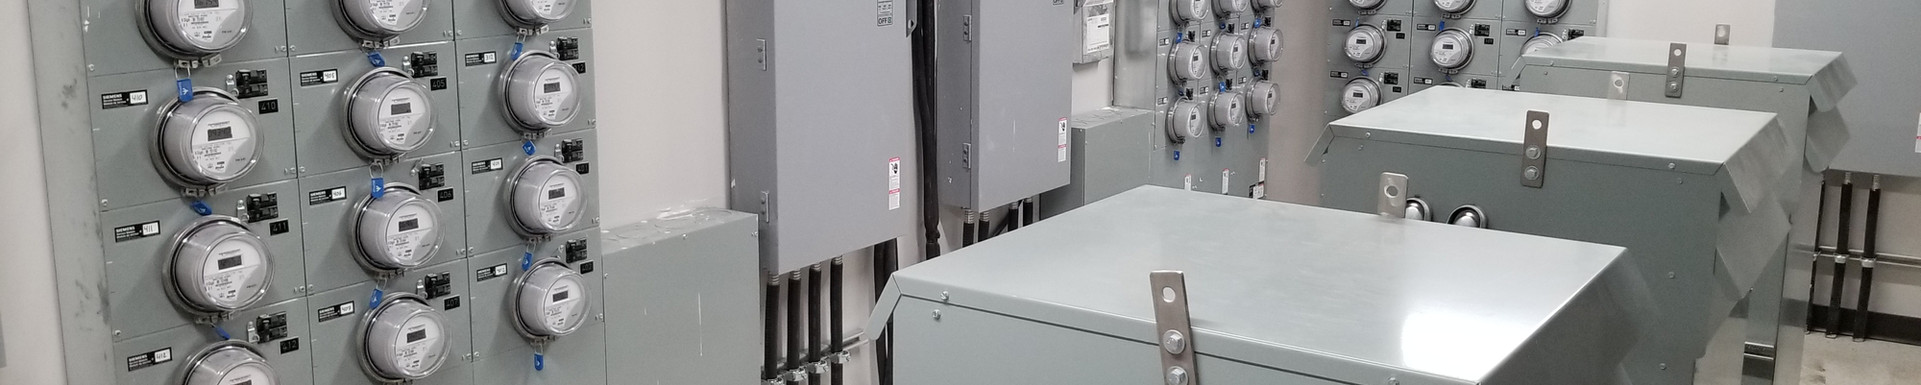 Commercial Electrical Meters